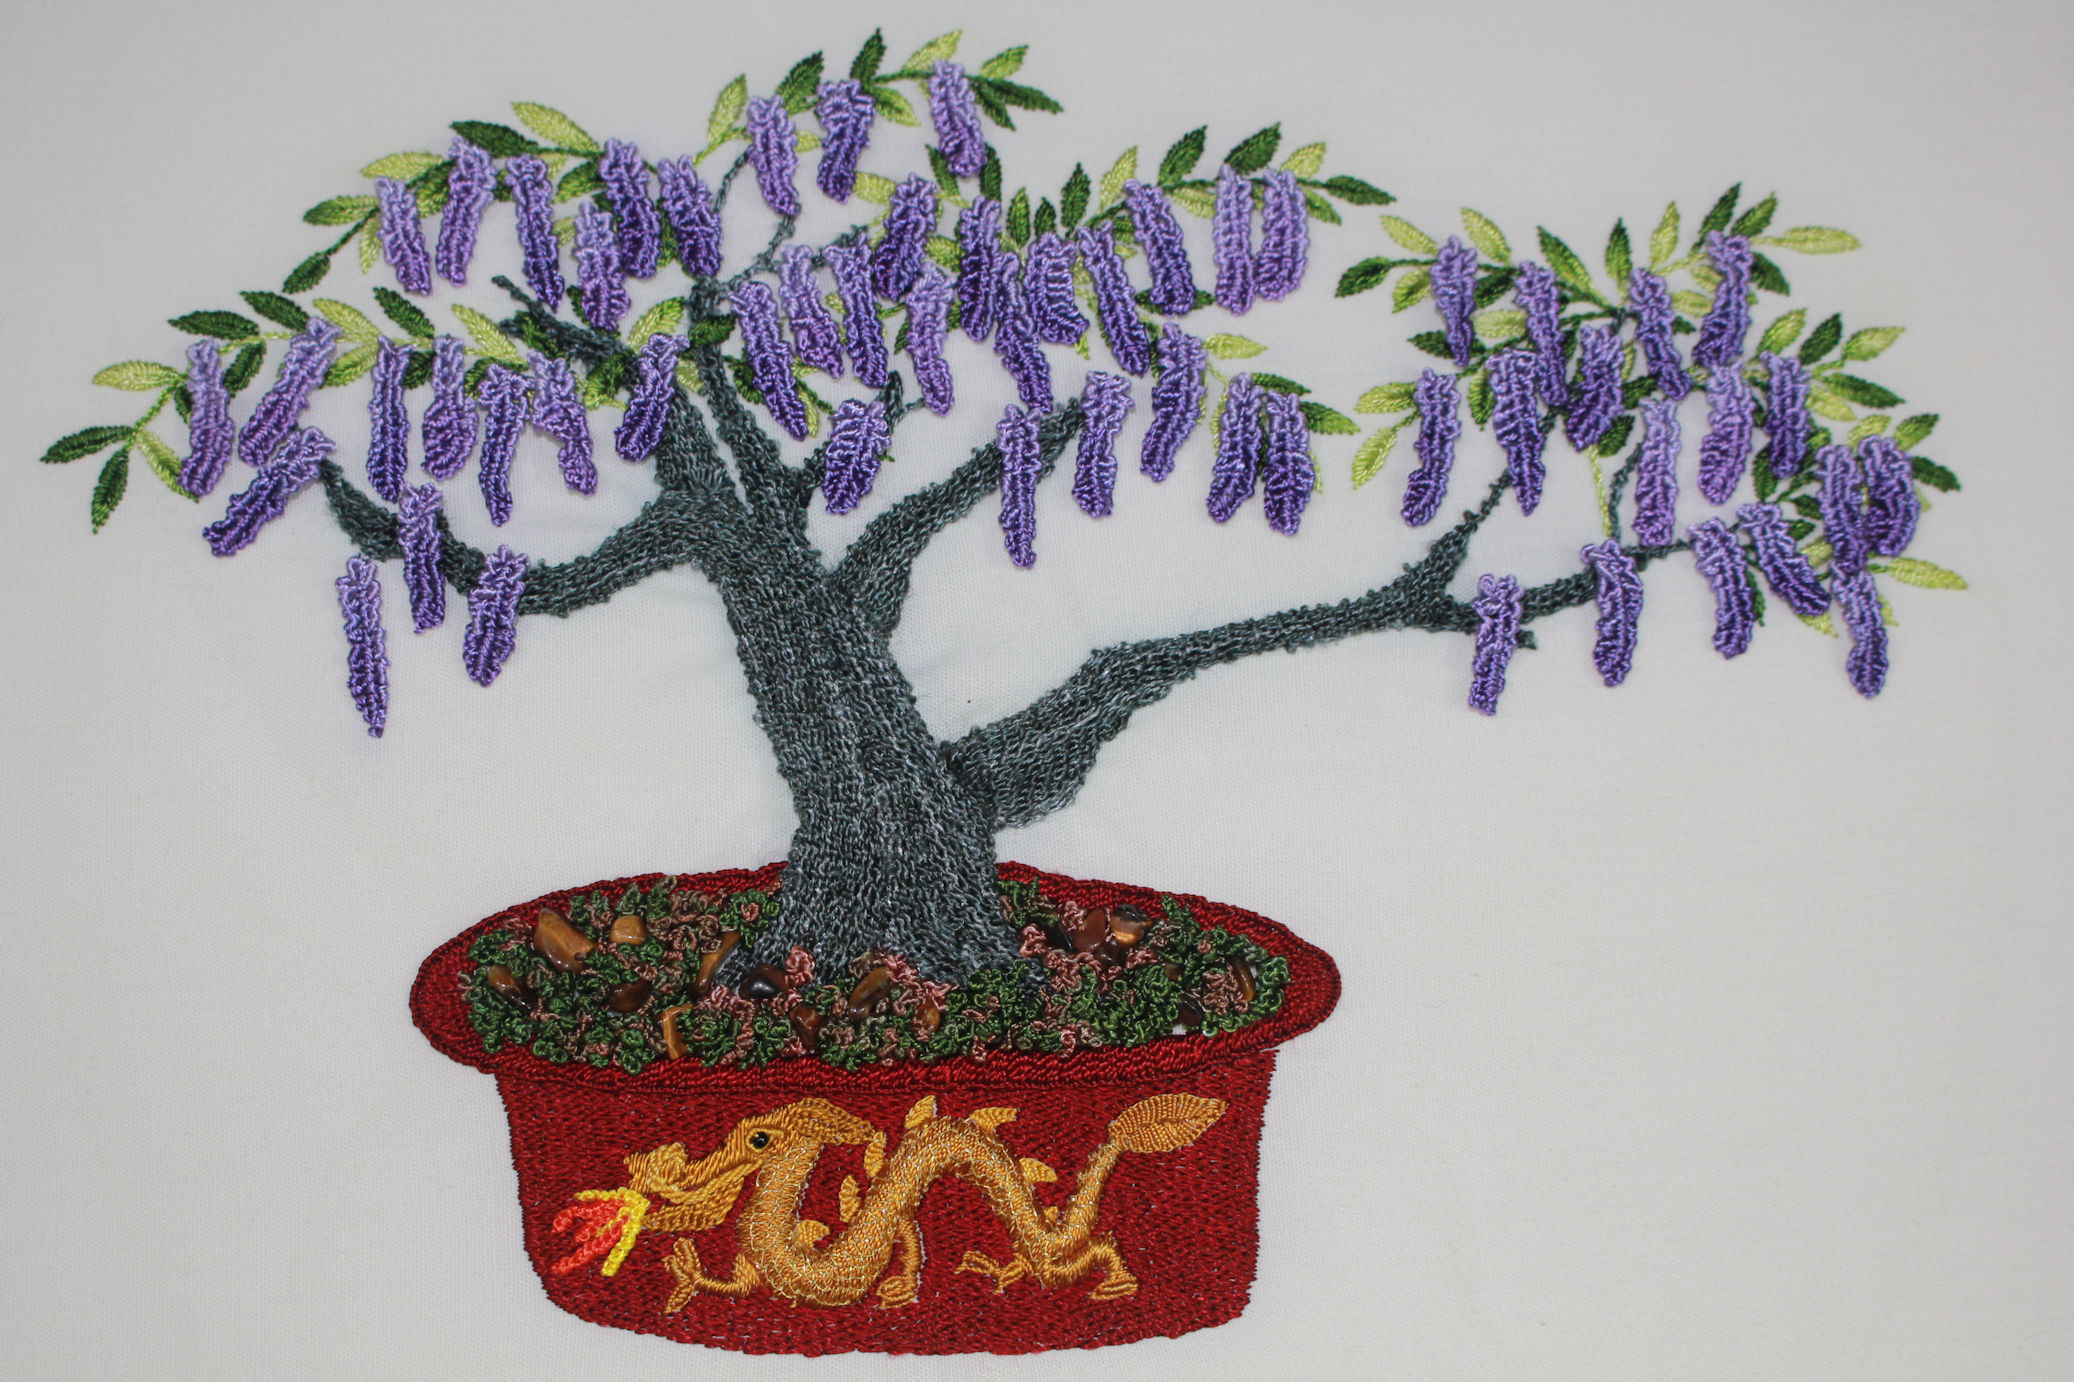 Wisteria Bonsai pic